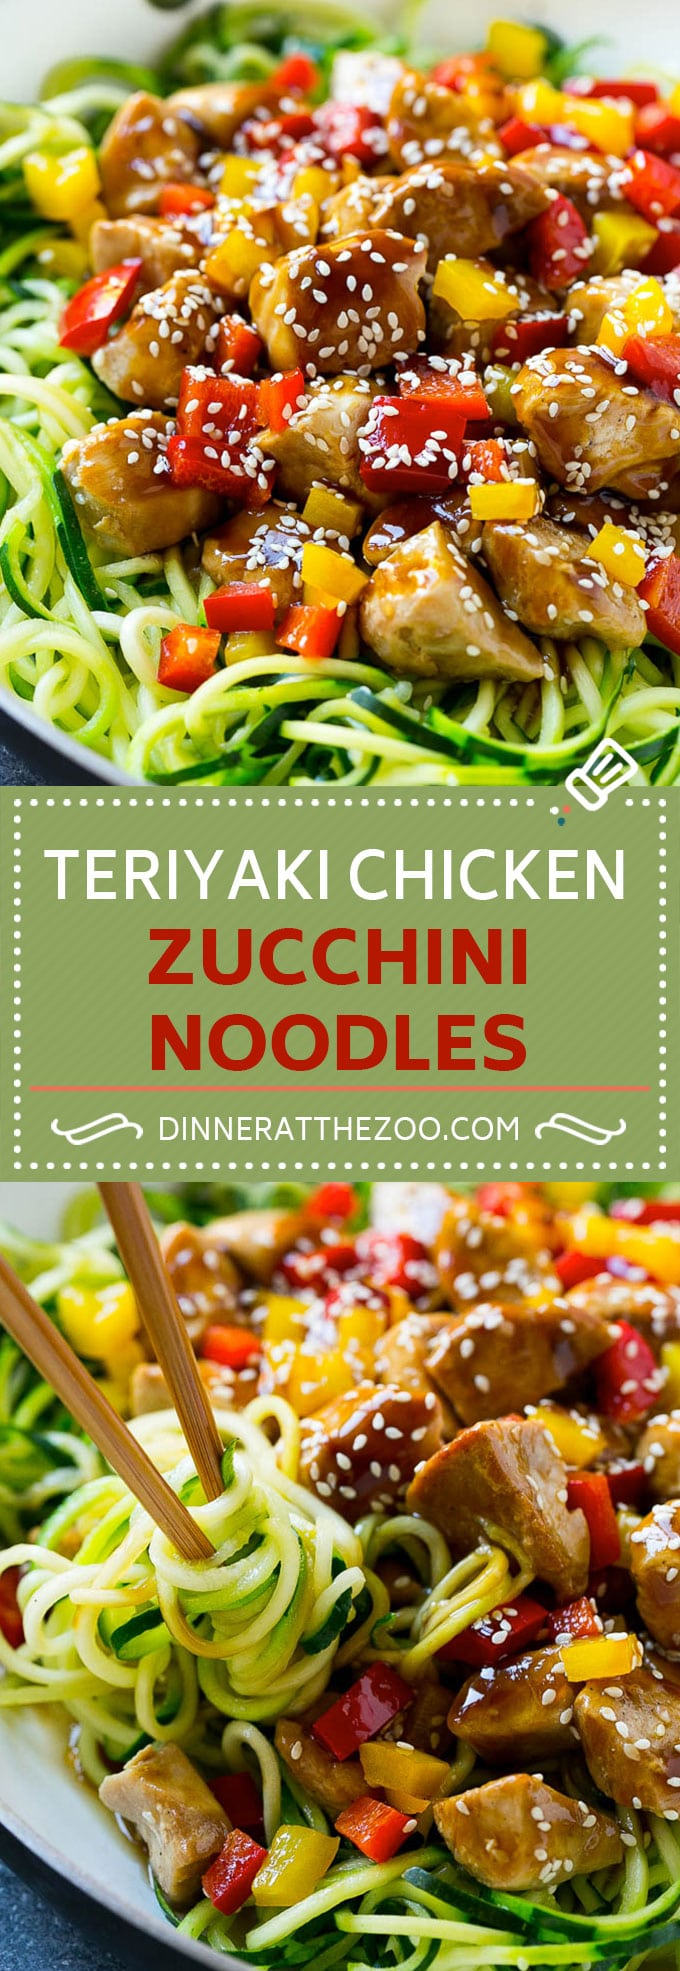 39 Healthy Zoodle (Zucchini Noodle) Recipes , Dinner at the Zoo